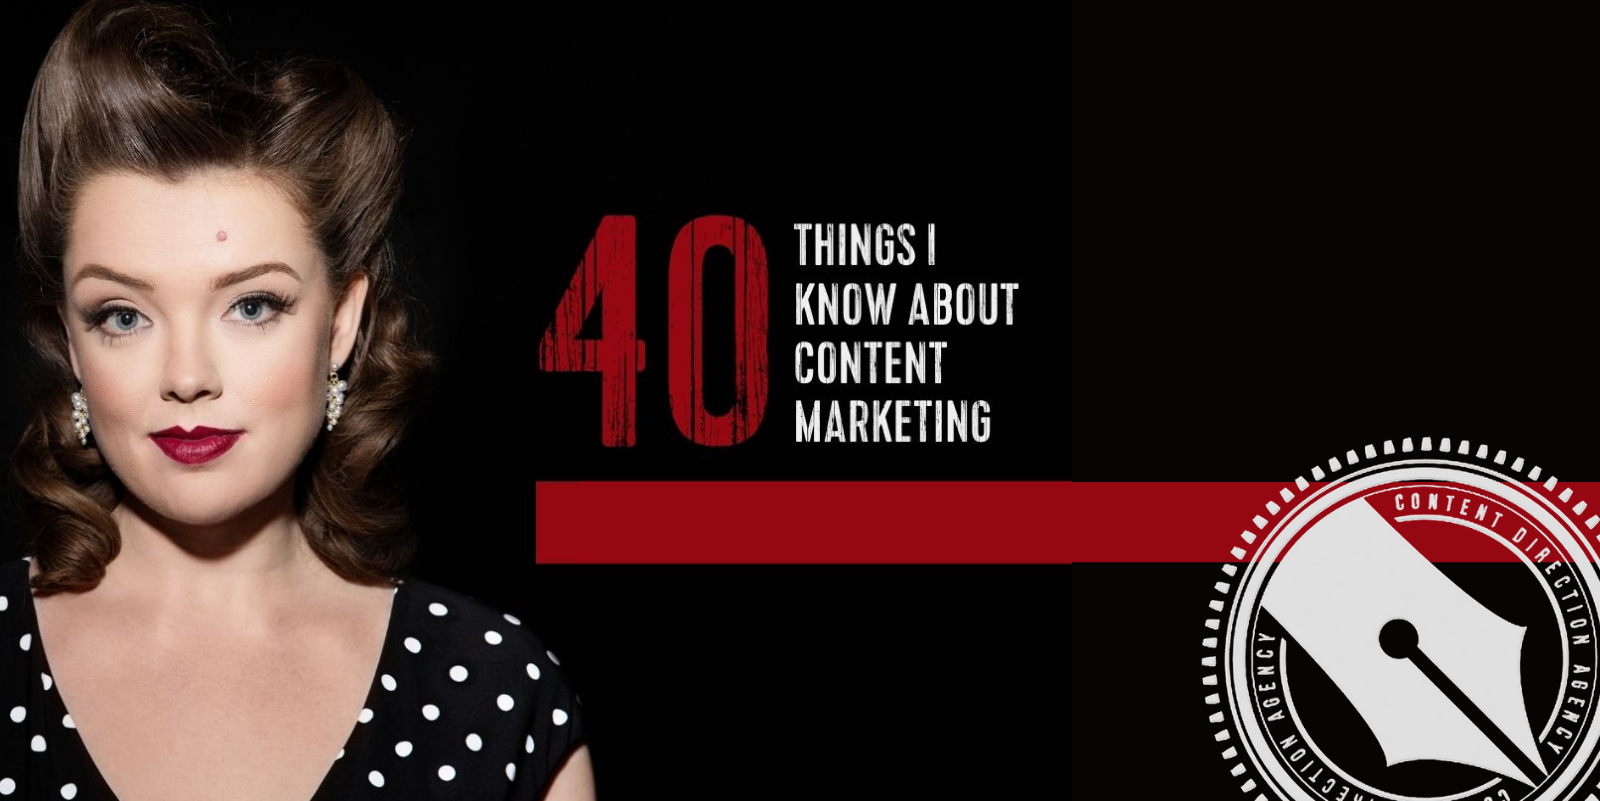 "[Lacy stands confidently looking at the camera against a black background. She is a white woman with curled hair and deep red lips. Her eyebrow is raised. Beside her in large bold font says, ""40 things I know about content marketing - part 1"". In the bottom right is The Content Direction Agency's logo.]"